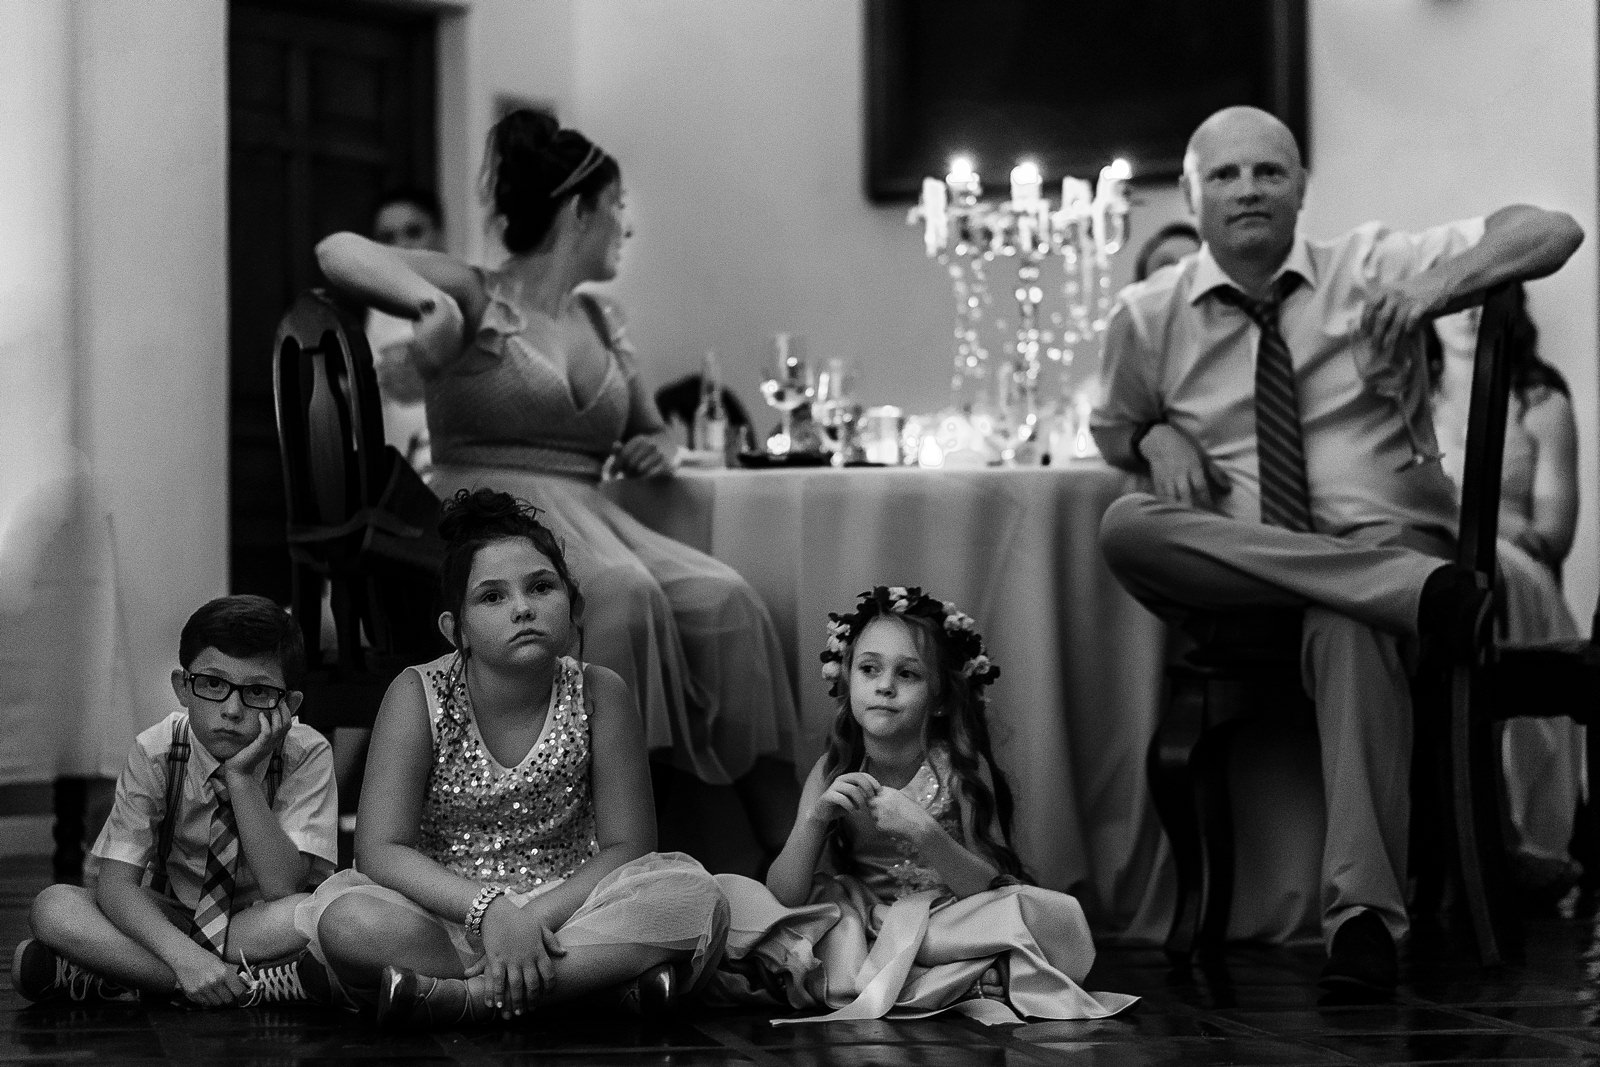 Different reactions from adults sitting on chairs and kids sitting on the floor at the wedding reception in Hacienda San Angel Puerto Vallarta